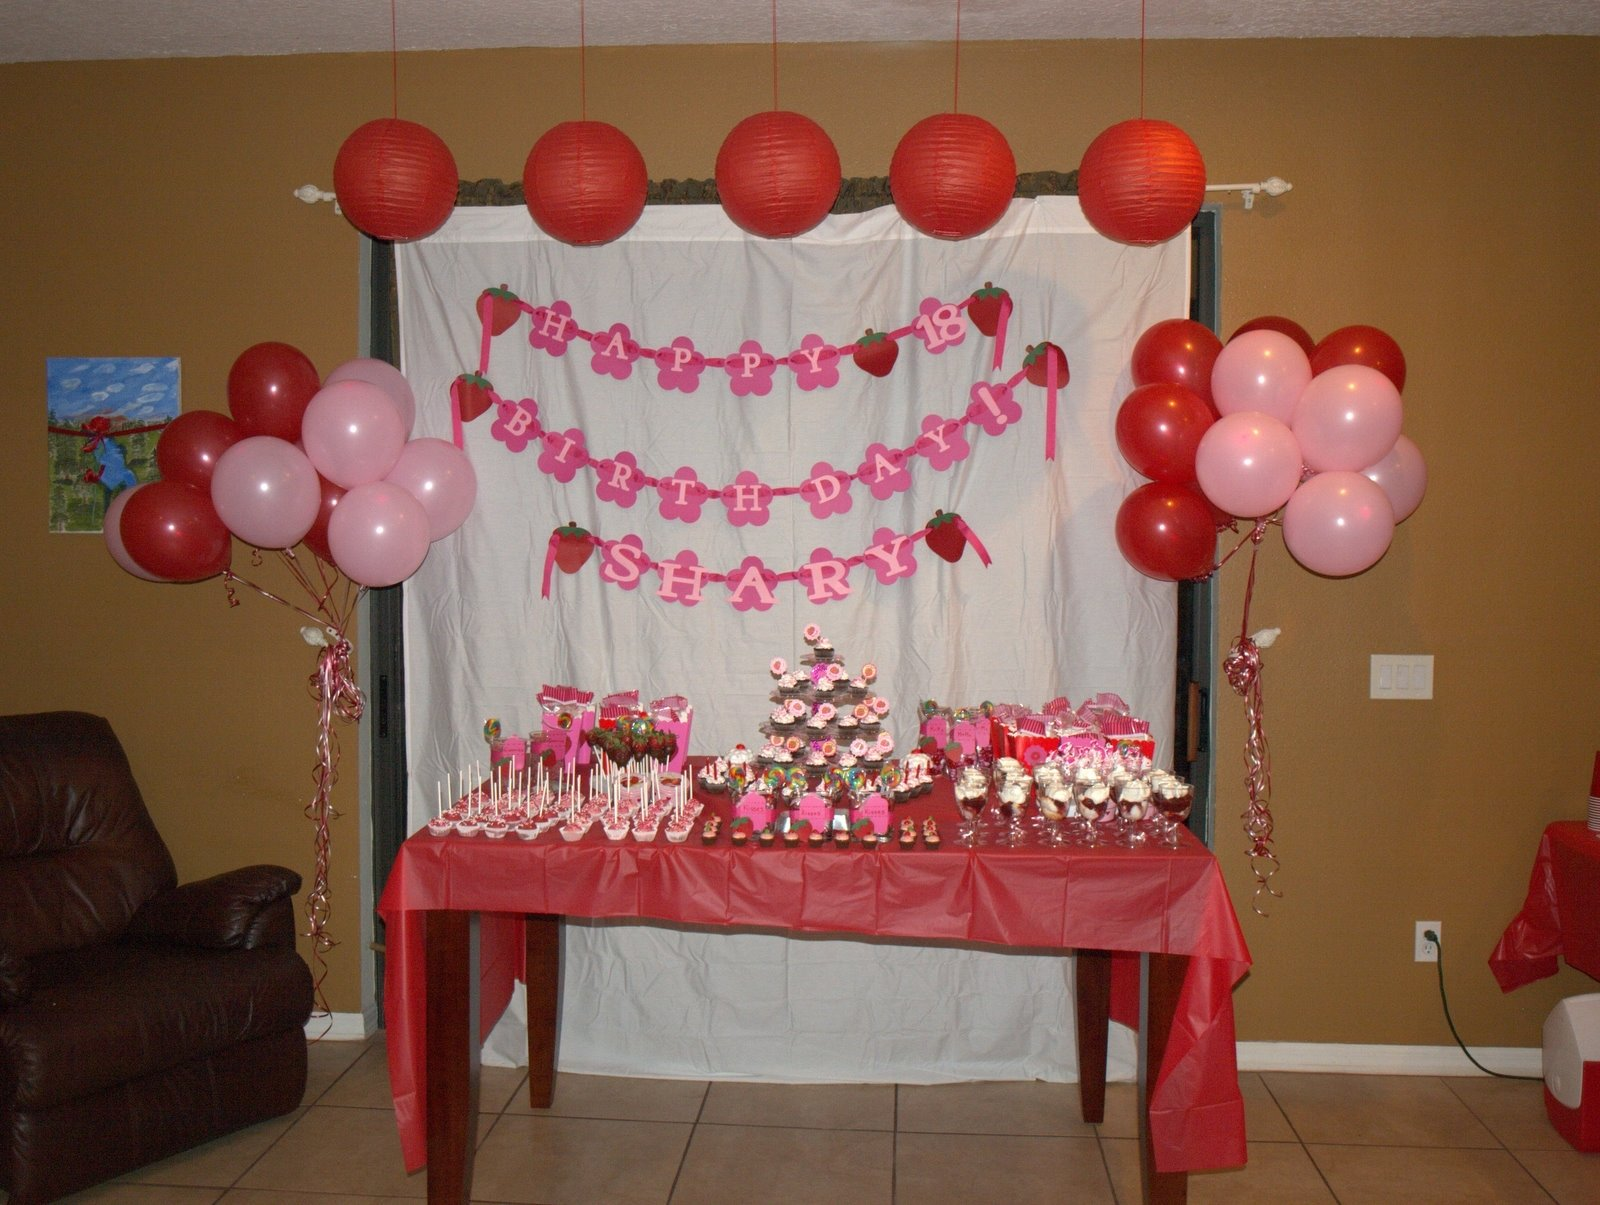 10 Best 18Th Birthday Party Ideas For A Girl 18th birthday party ideas for a girl margusriga baby party 2 2020